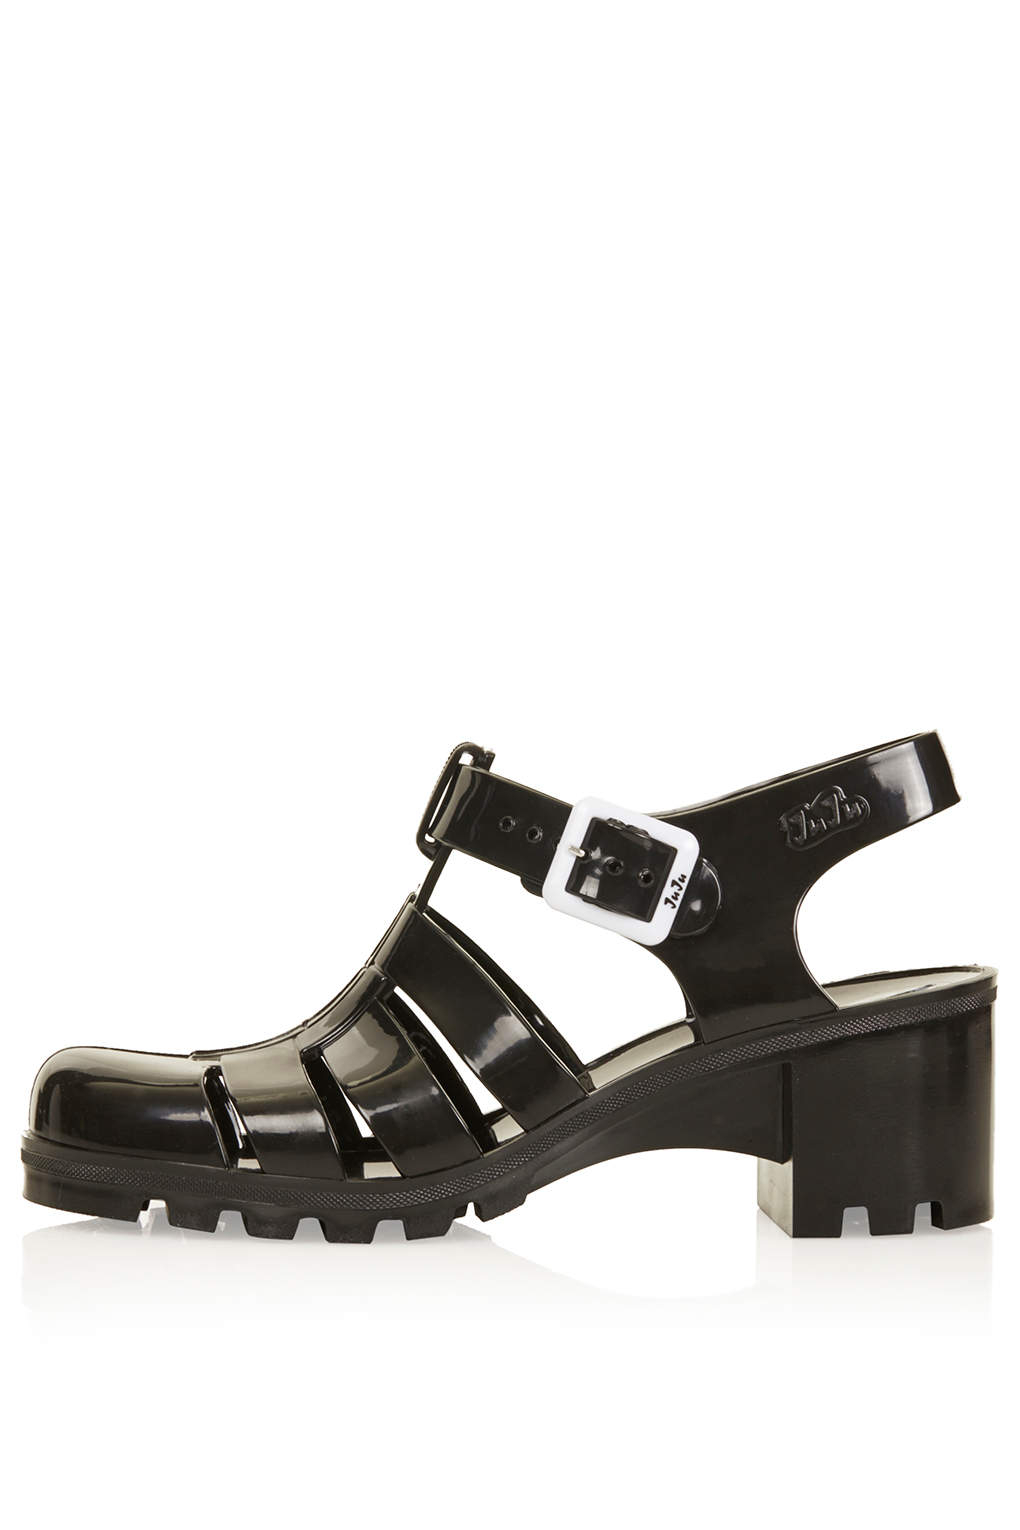 Black jelly sandals topshop